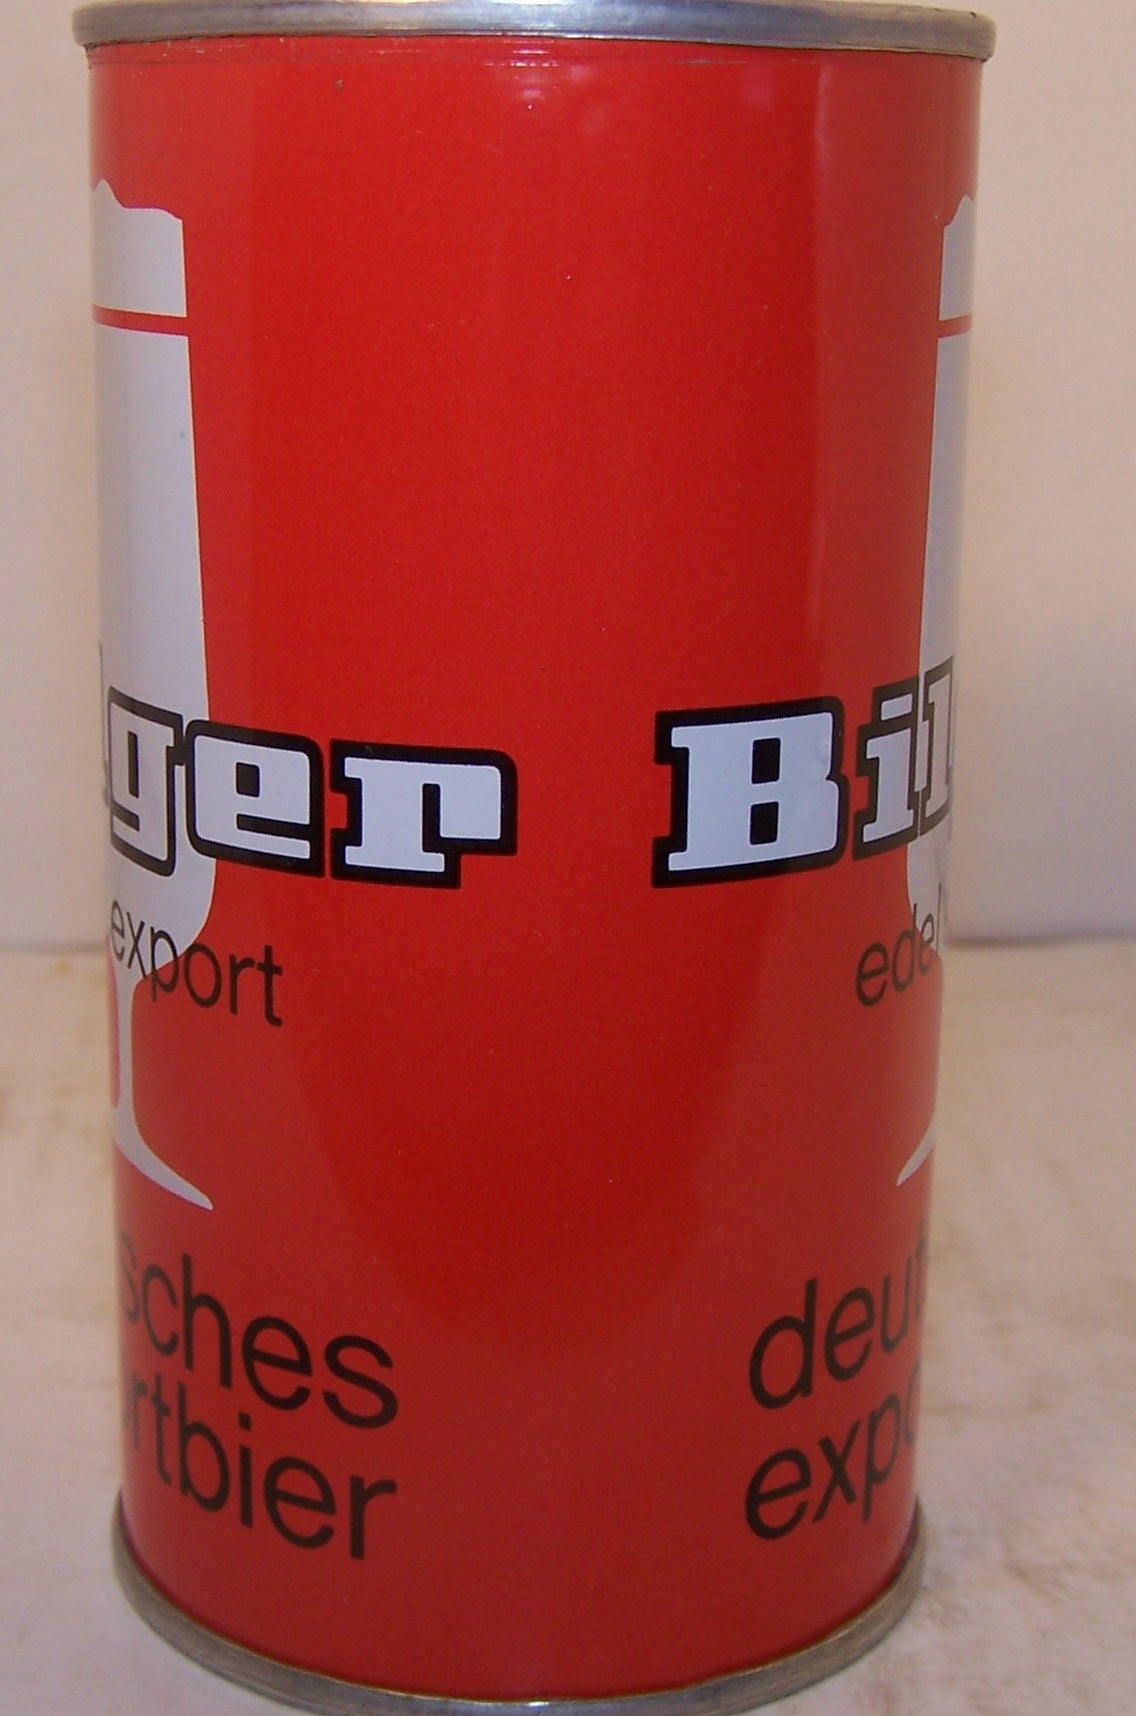 Bilger Deutsches Exportbier, can is rolled, Grade A1+ Sold on 10/28/15